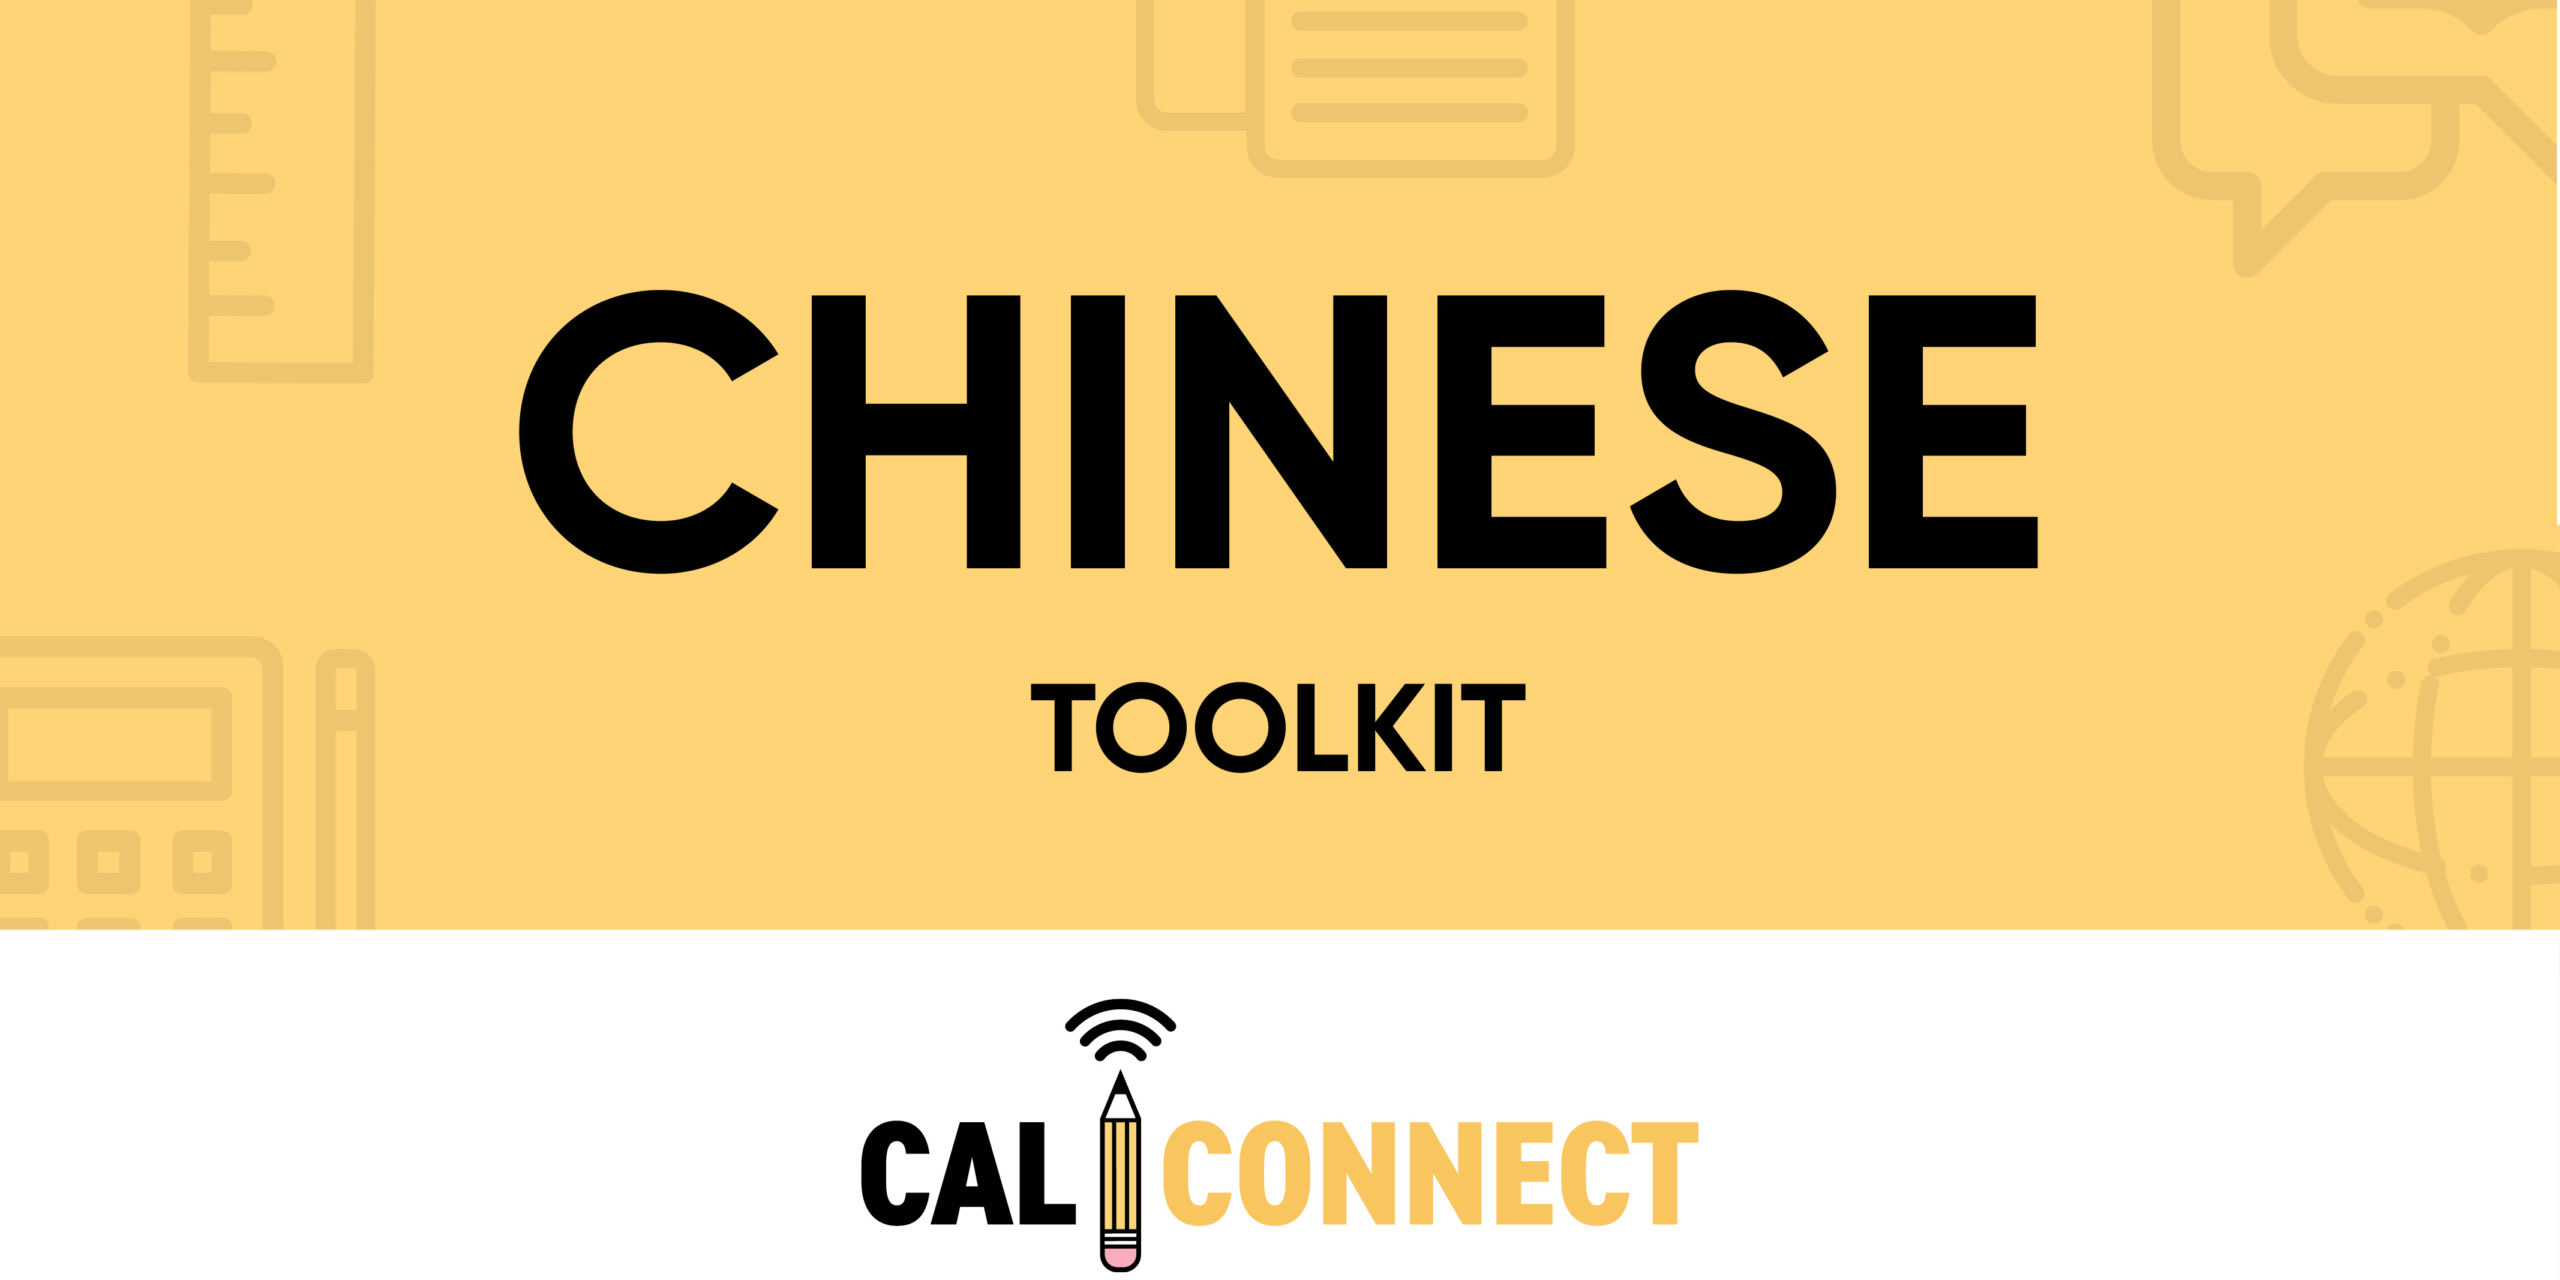 CALConnect Chinese Toolkit